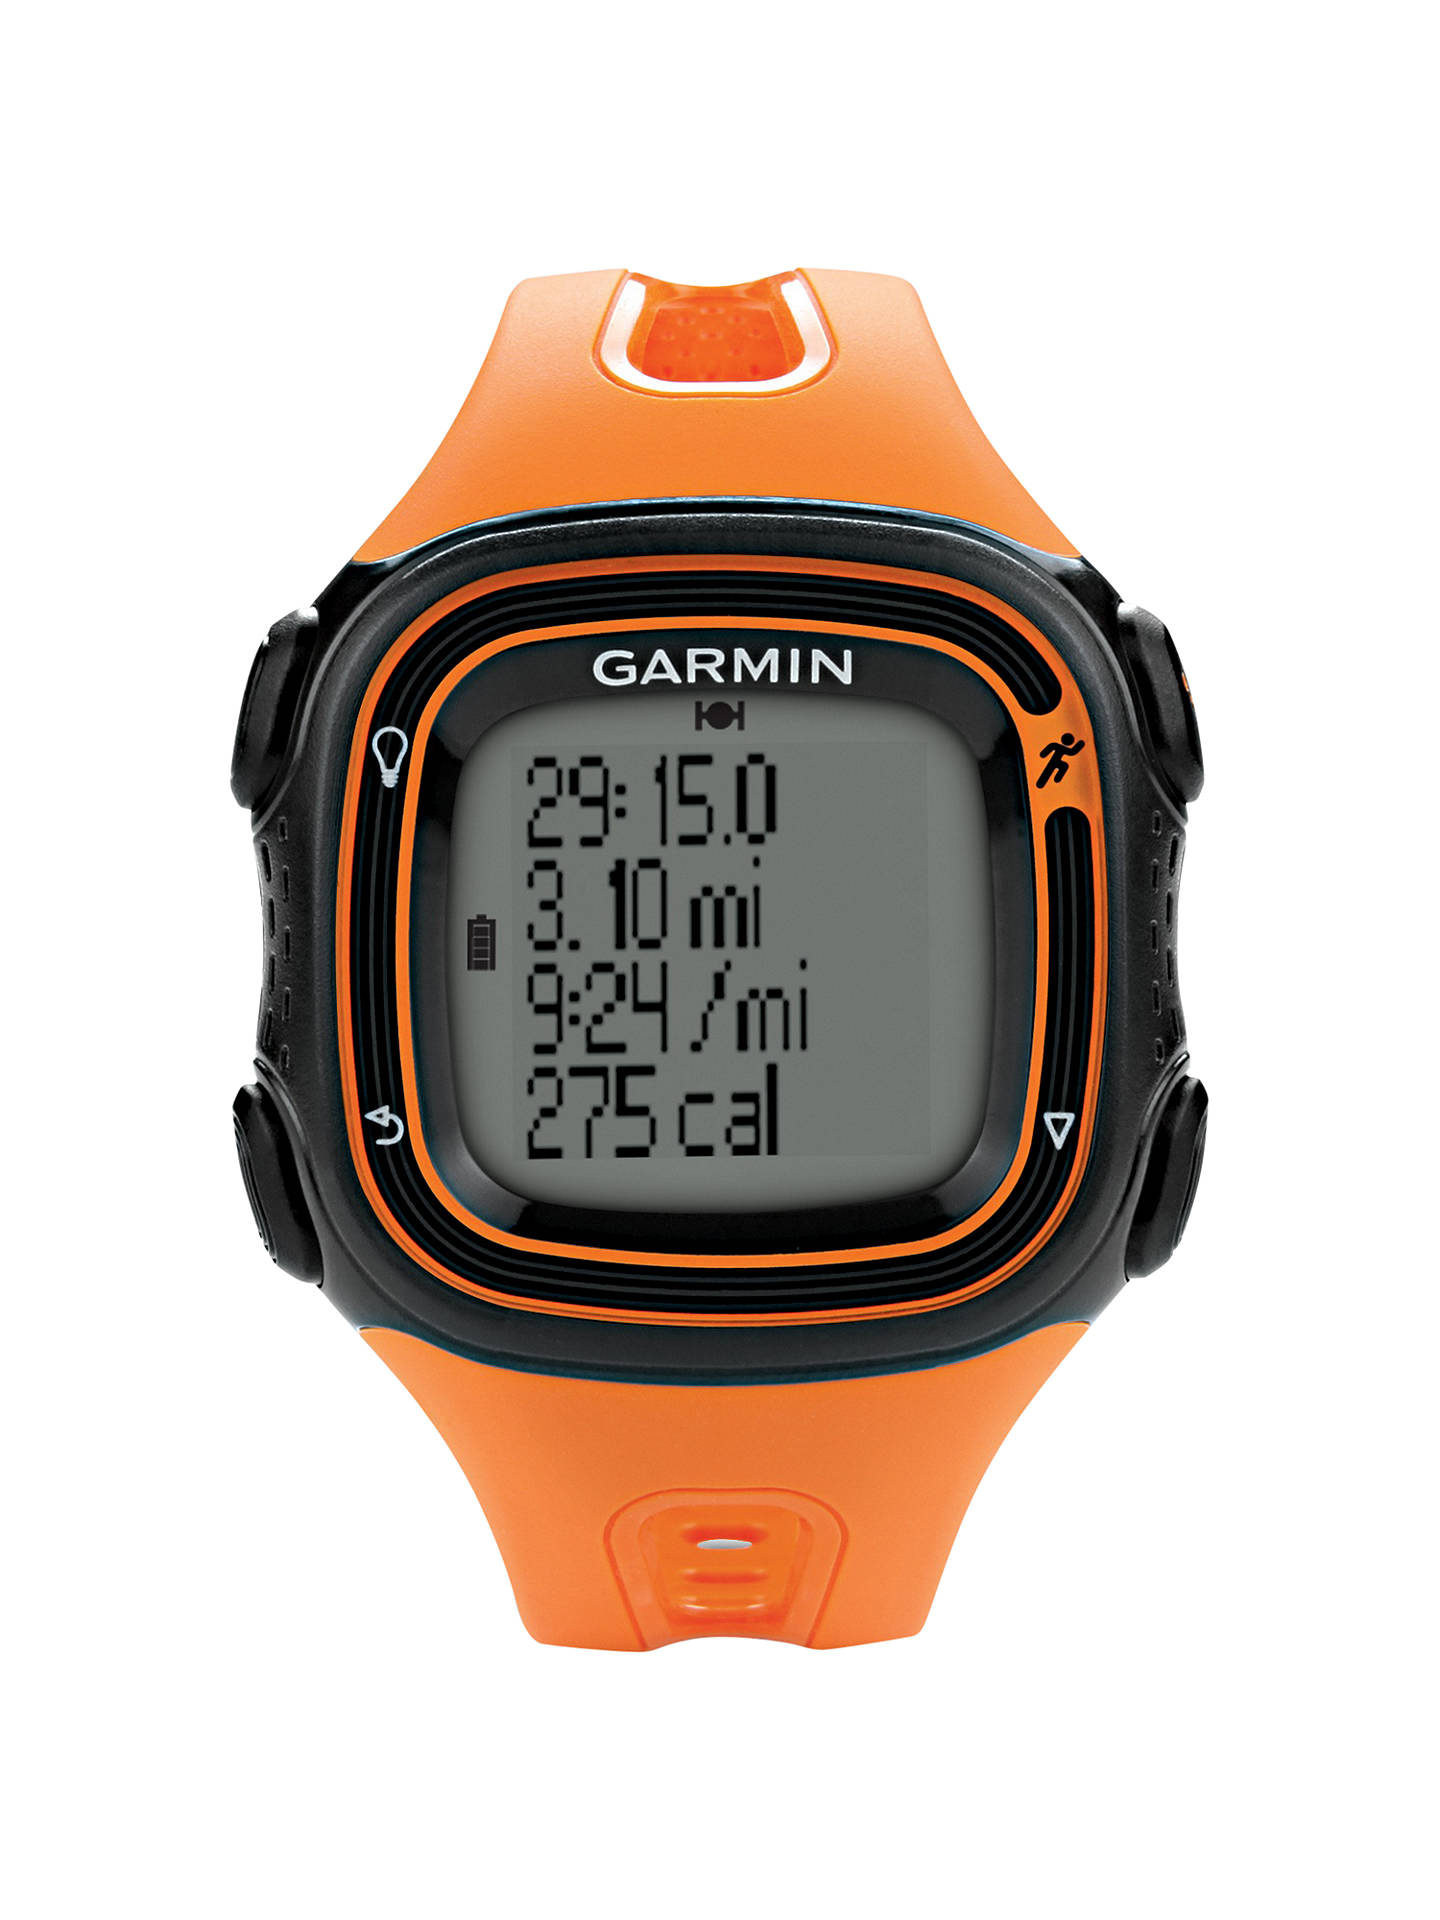 Garmin Forerunner 10 >> Garmin Forerunner 10 Gps Running Watch Orange At John Lewis